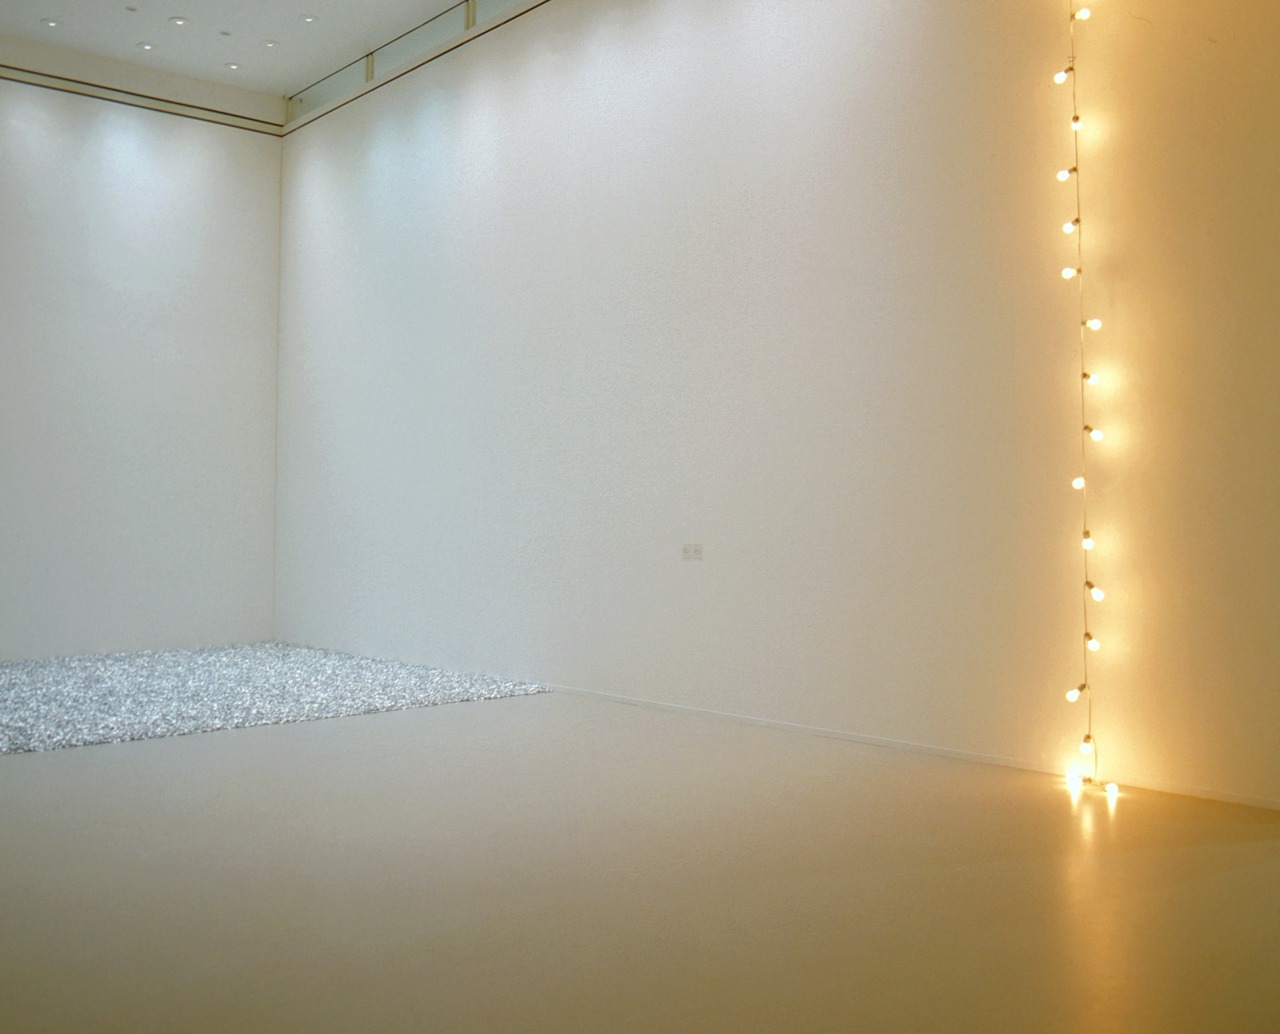 Félix González-TorresOne of my favourite artists. Once dazzled by the warm glow of the light installation, the viewer is invited to take a sweetie from the floor.